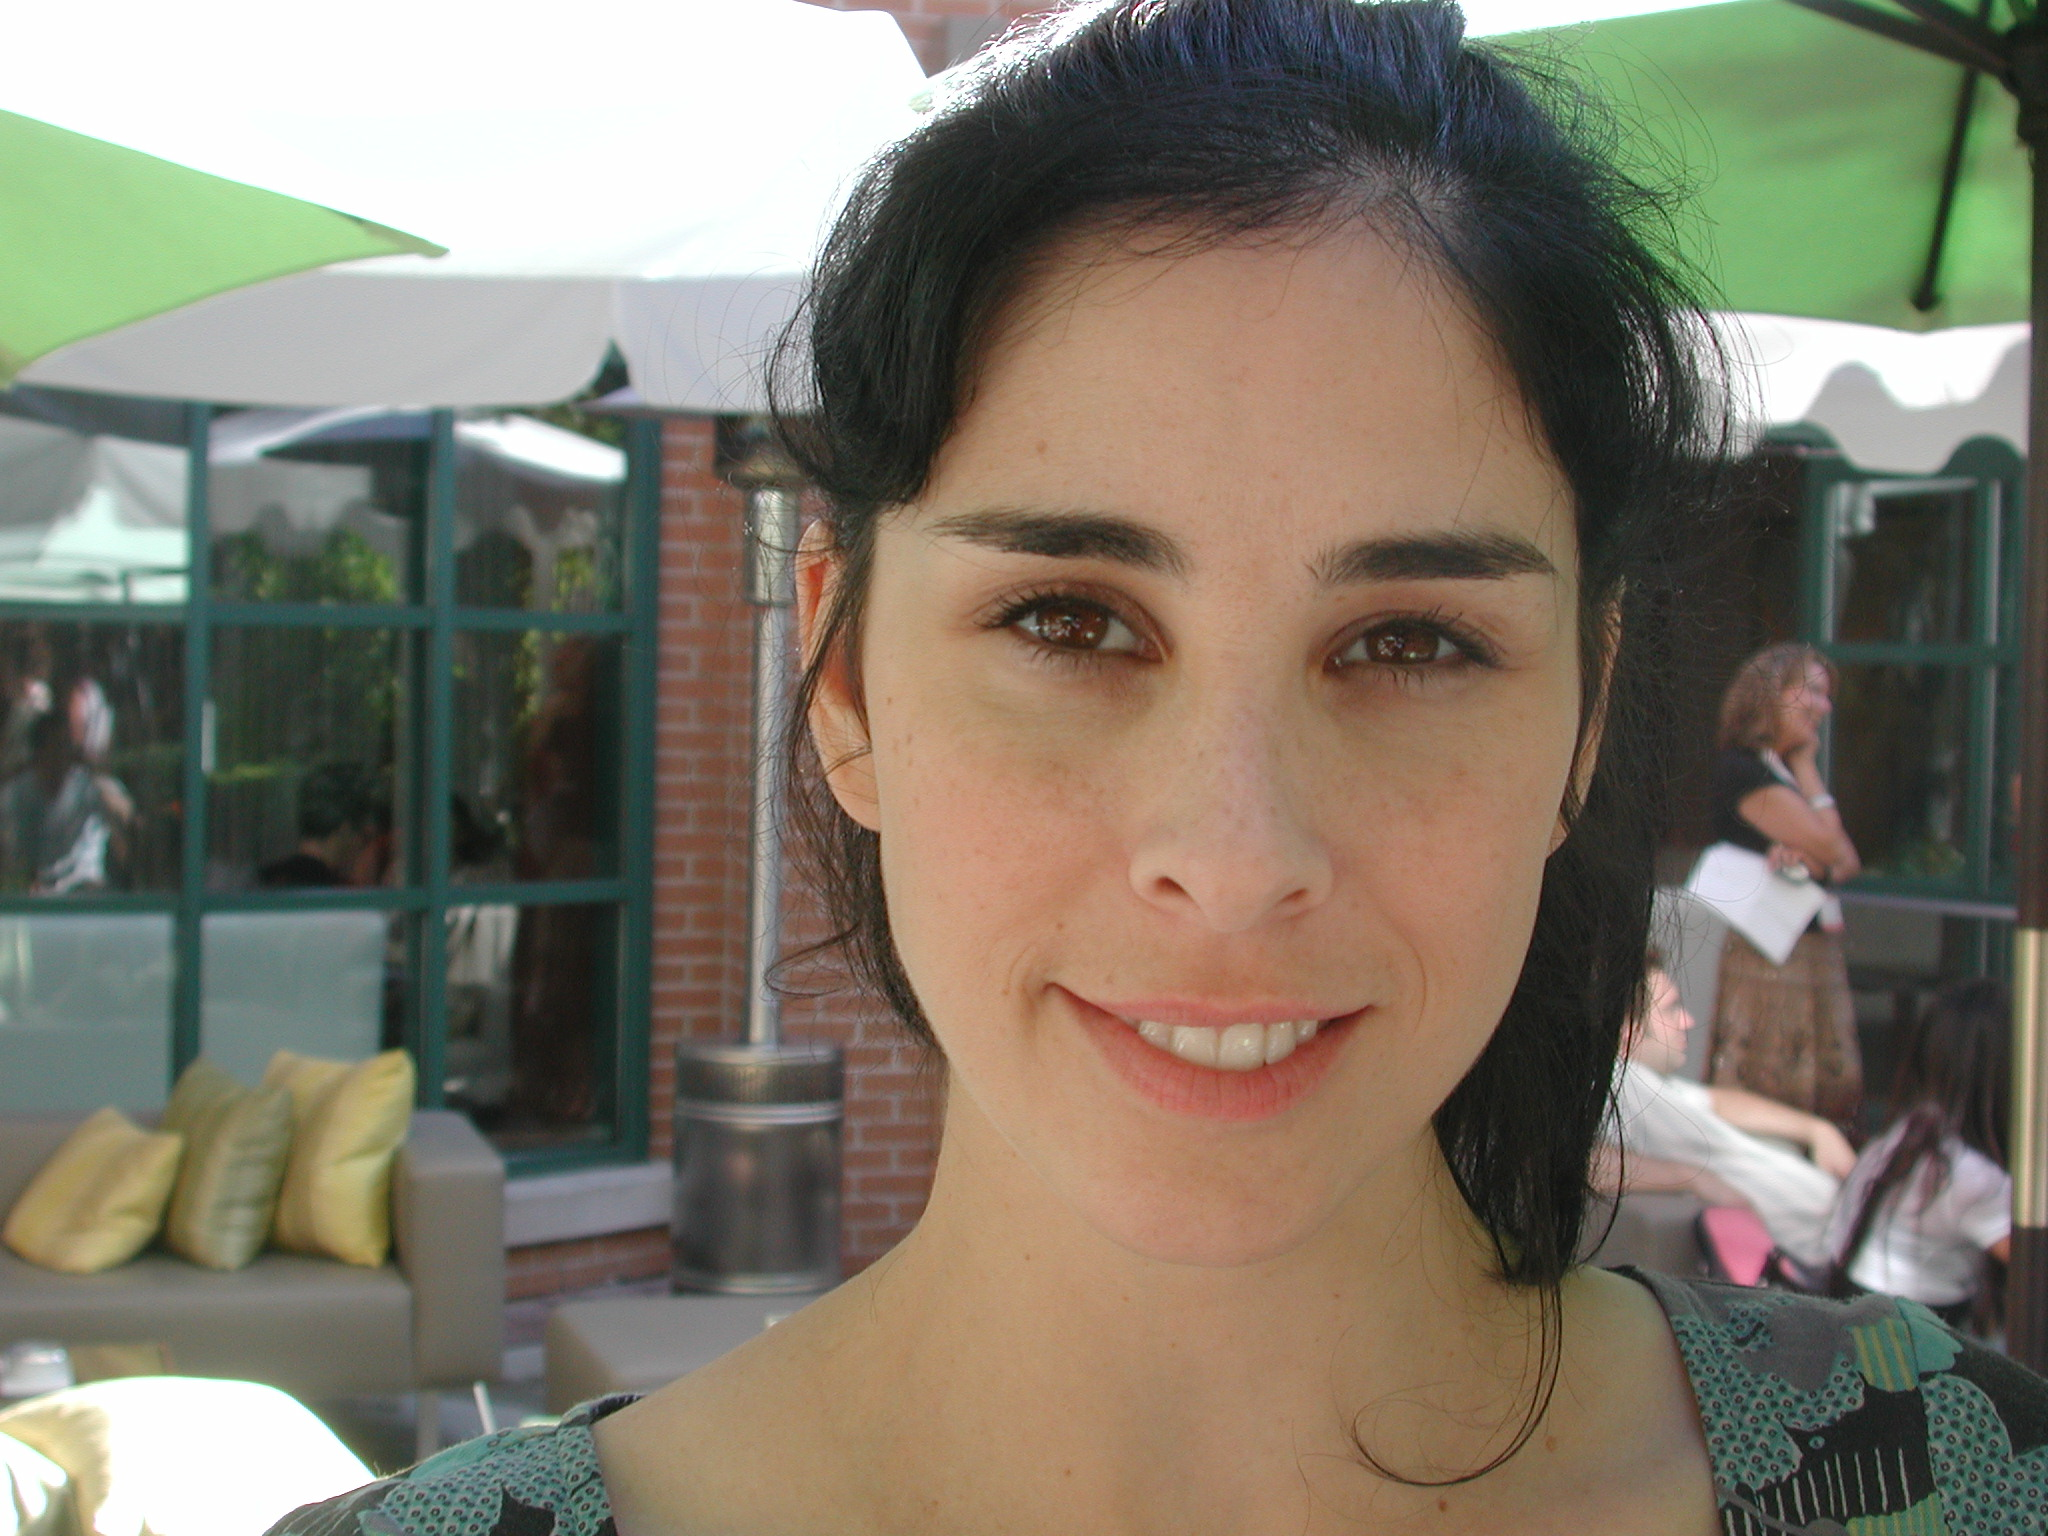 Creative conversation with actress and comic Sarah Silverman in the patio of Toronto's InterContinental Hotel